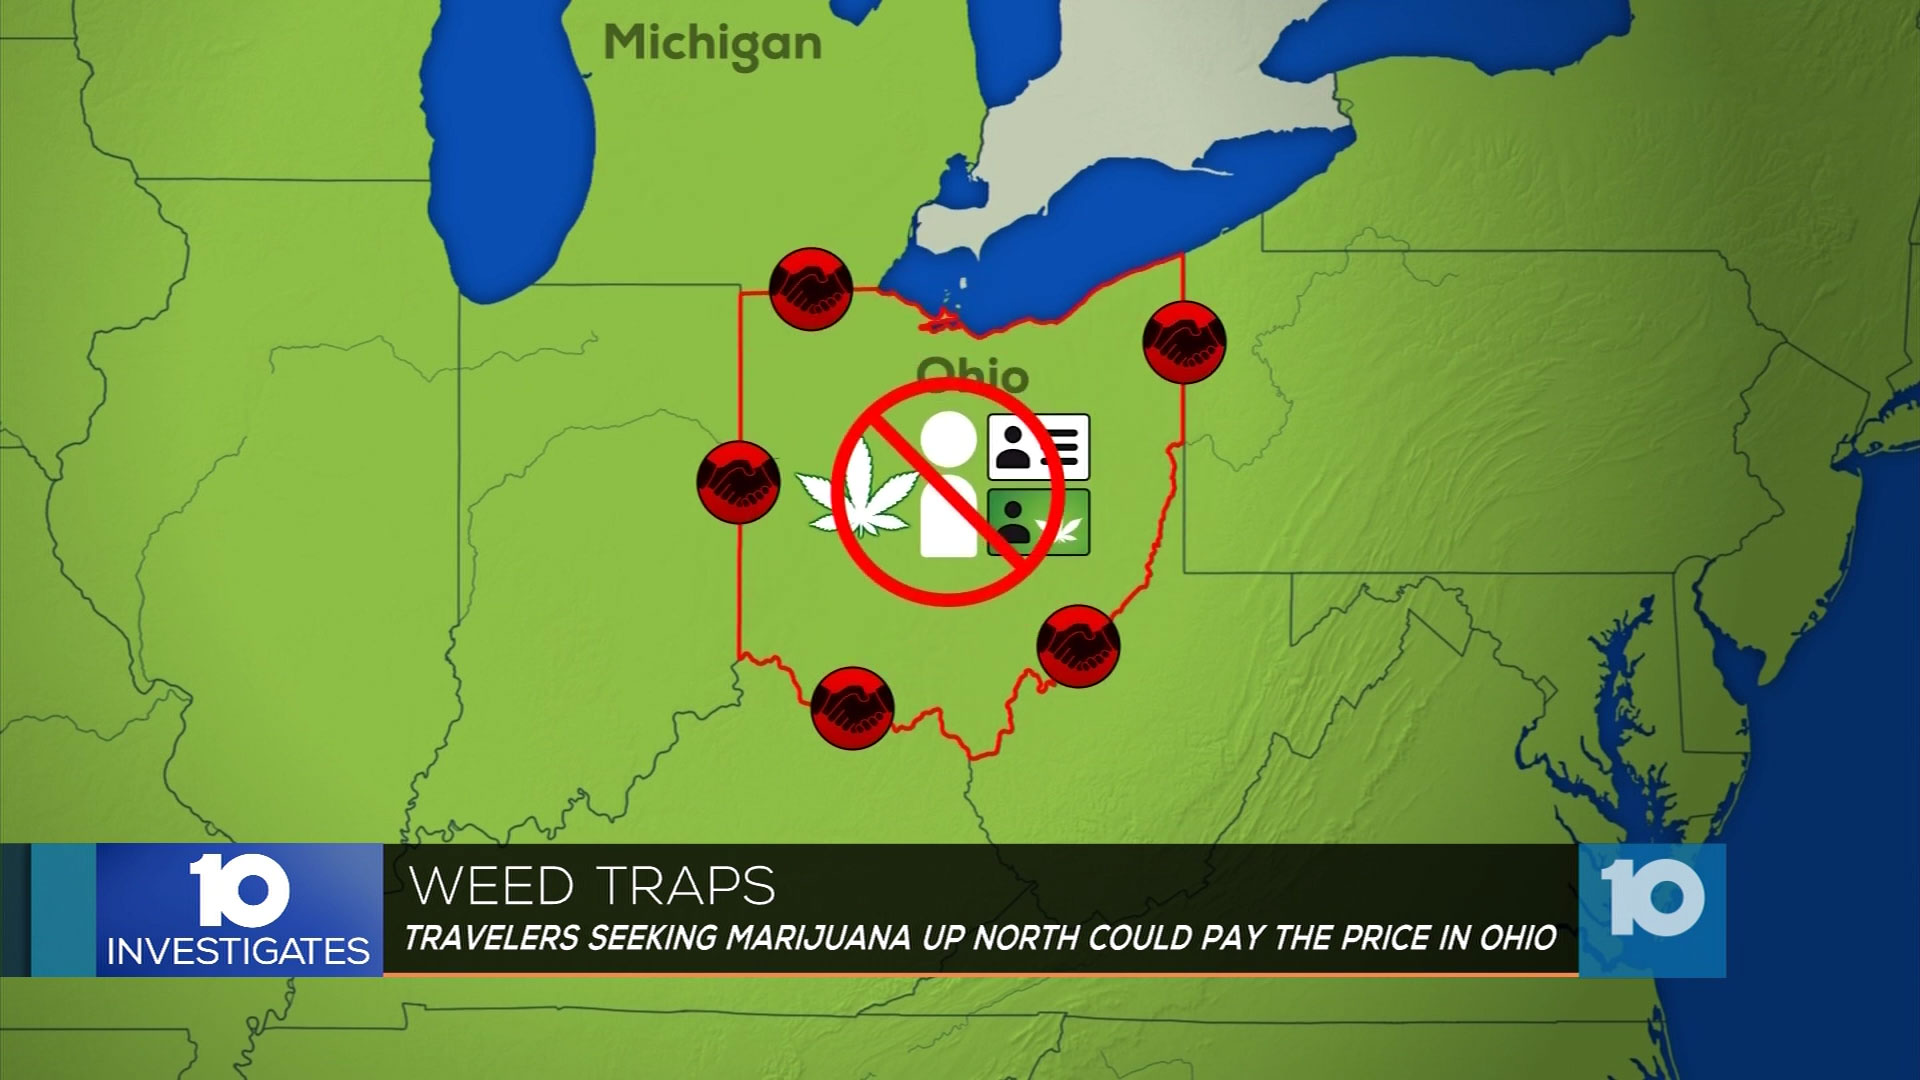 WBNS: Ohio's Weed Trap